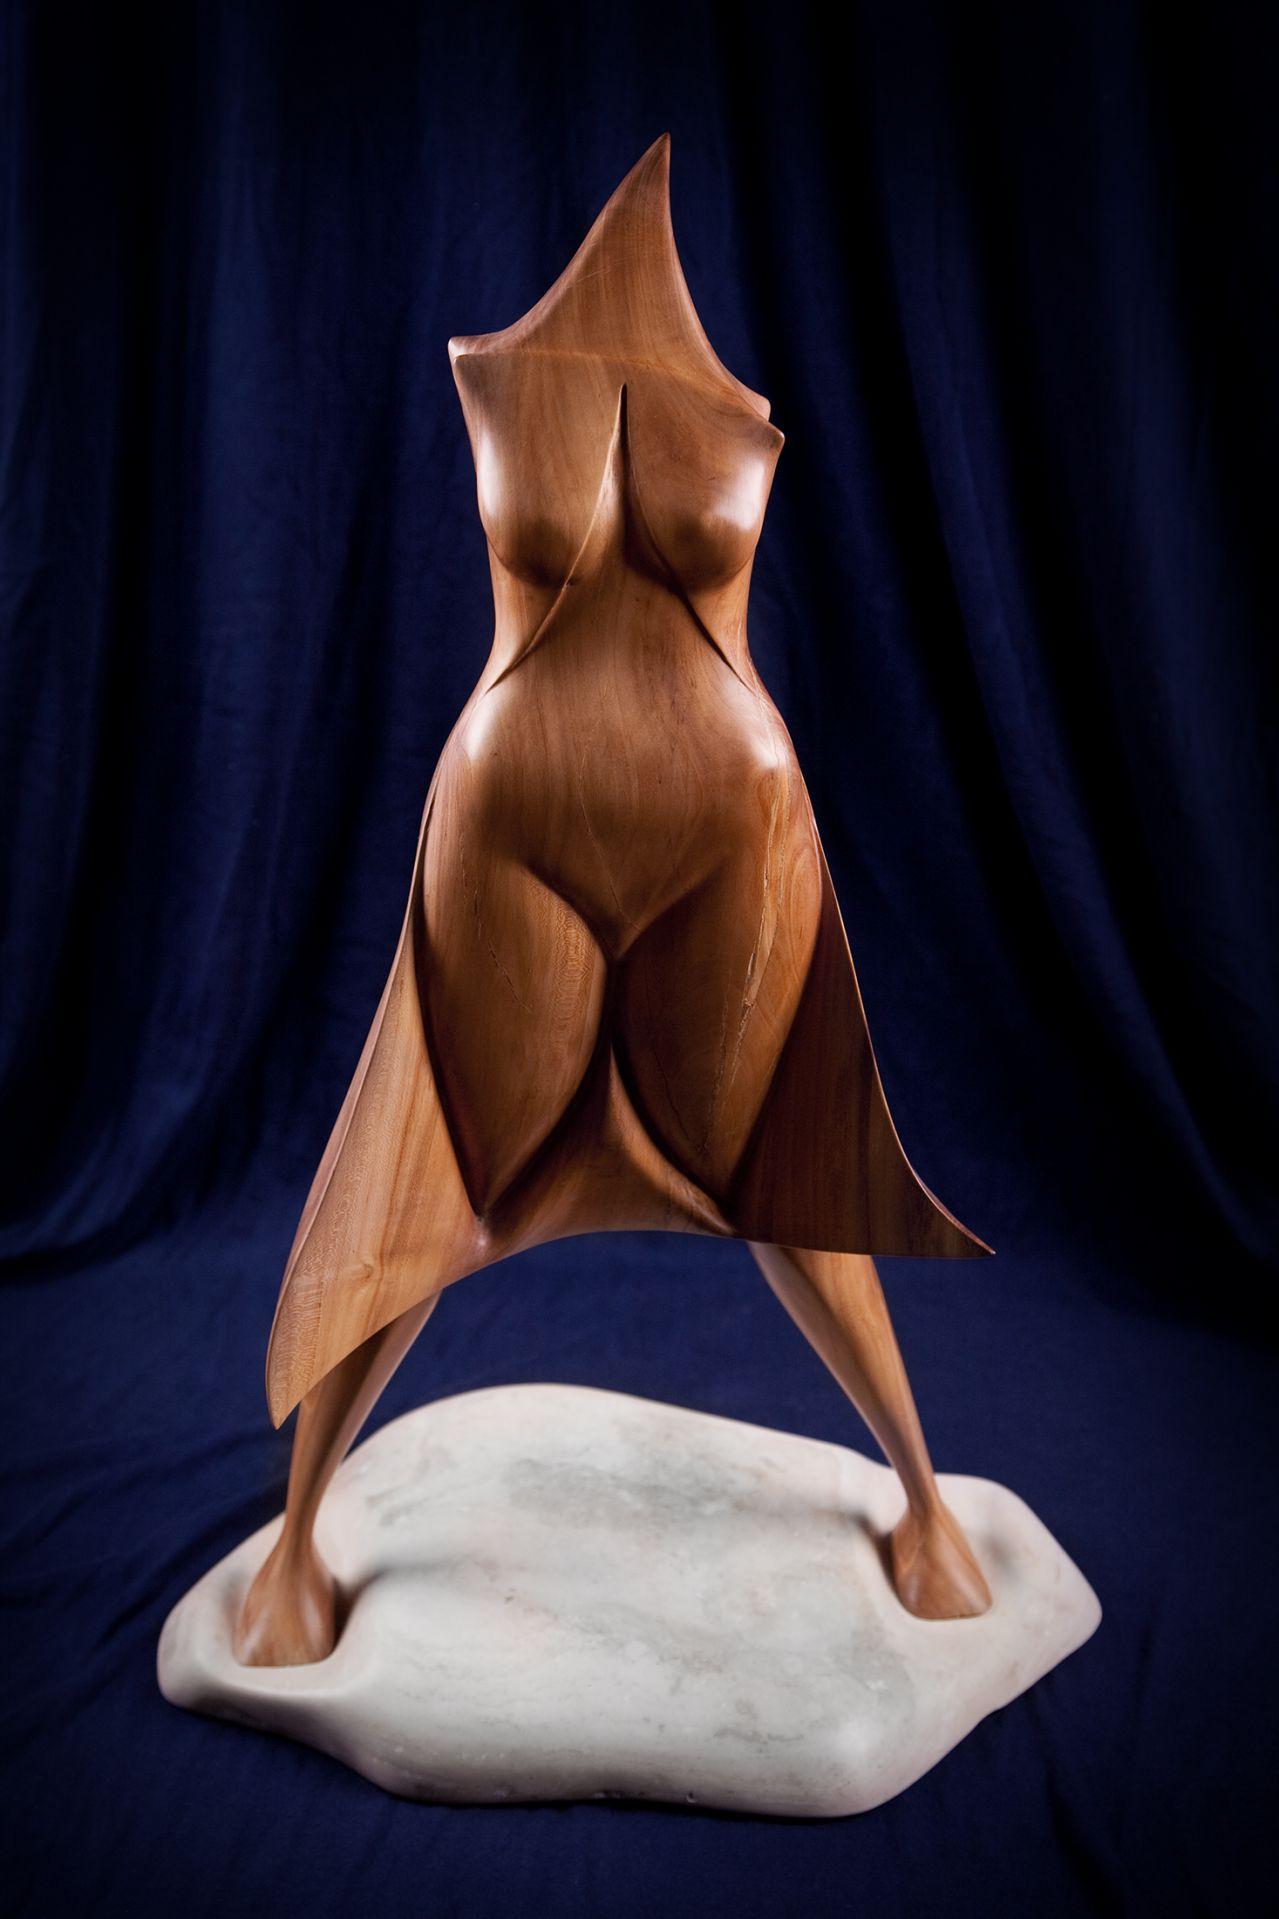 wood sculptures art handmade unique artist design Under the Muse